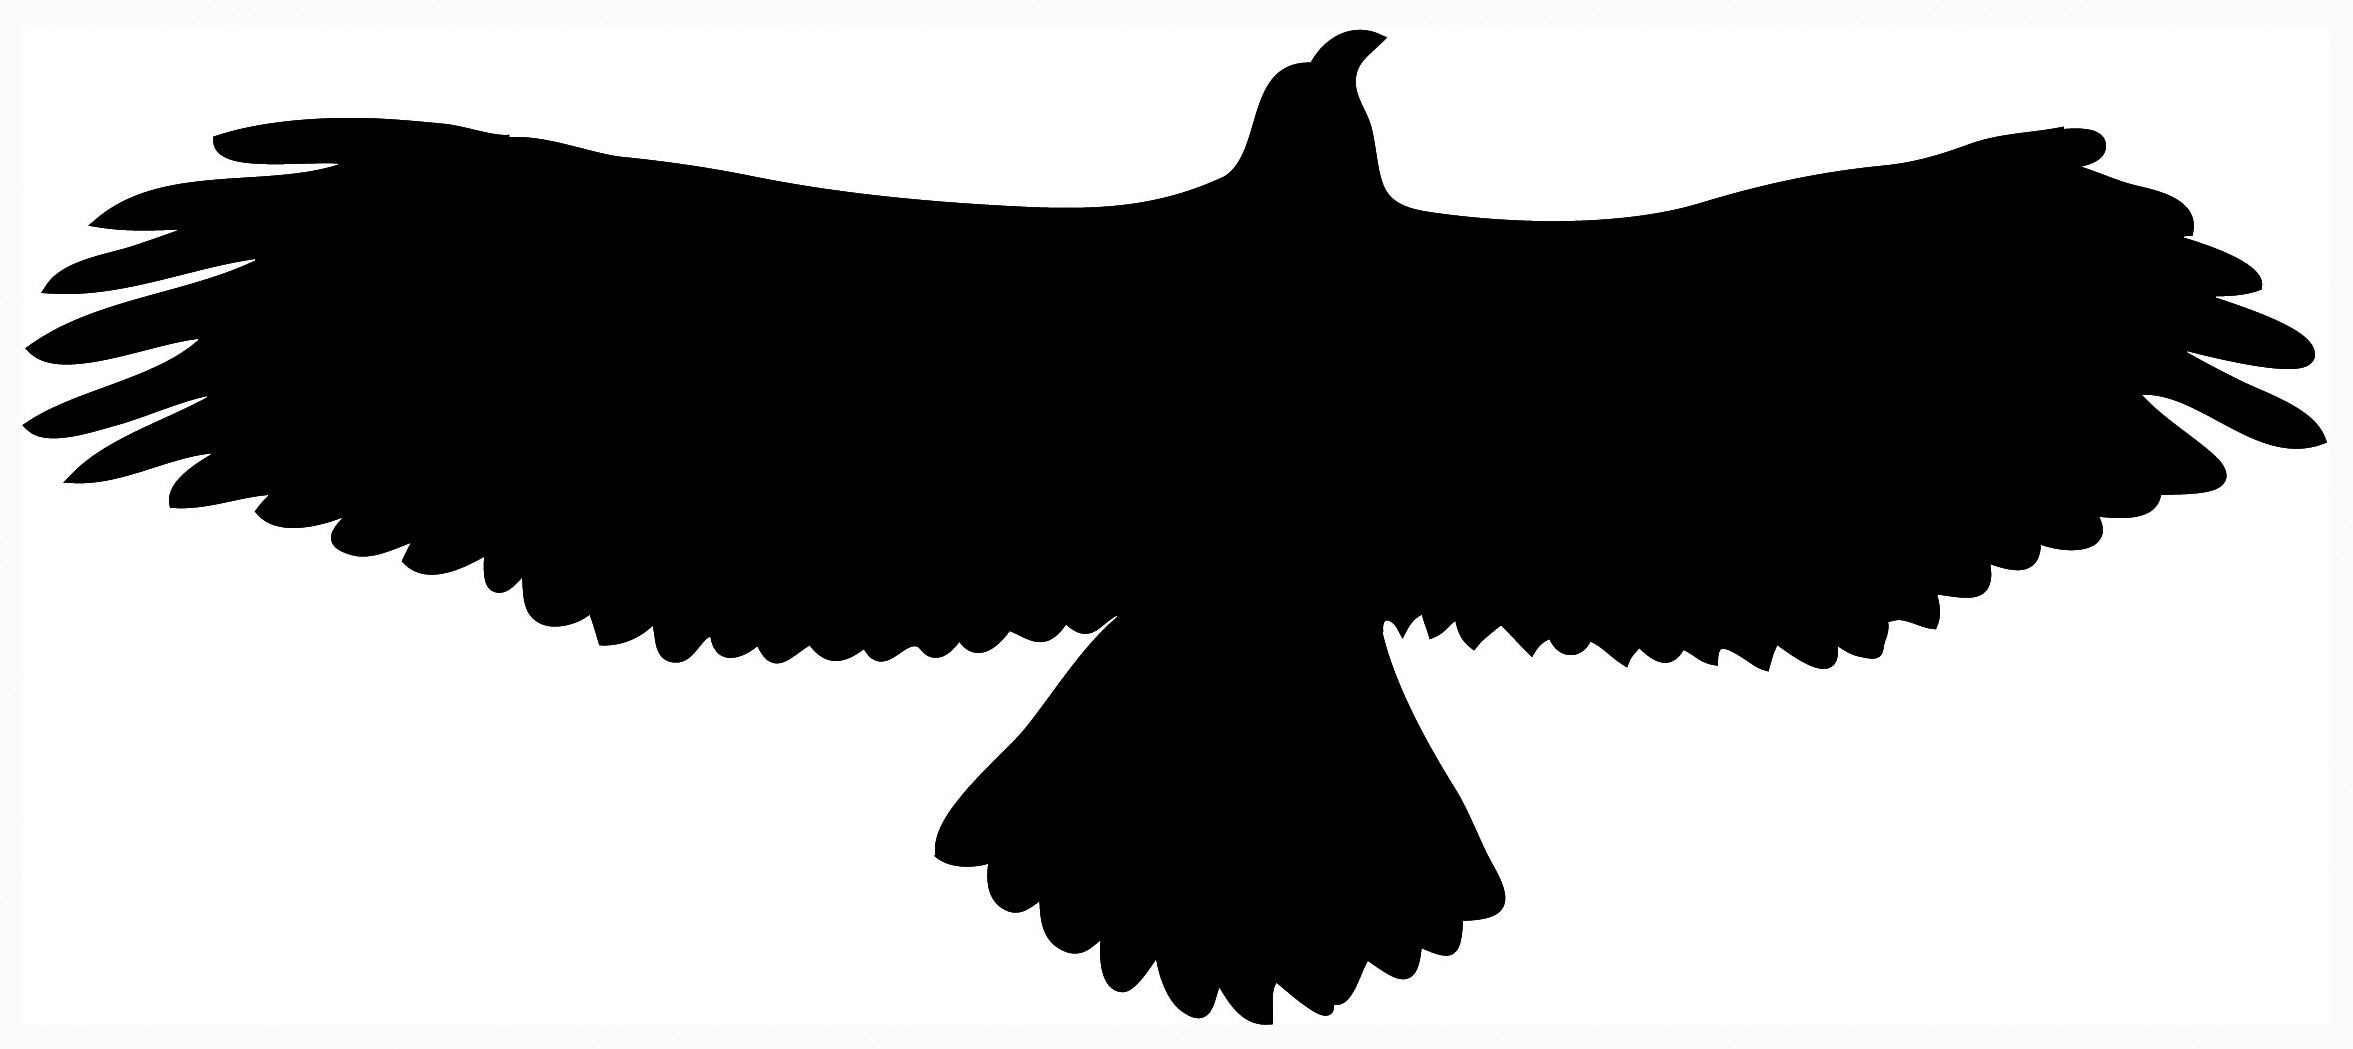 golden eagle silhouette in flight